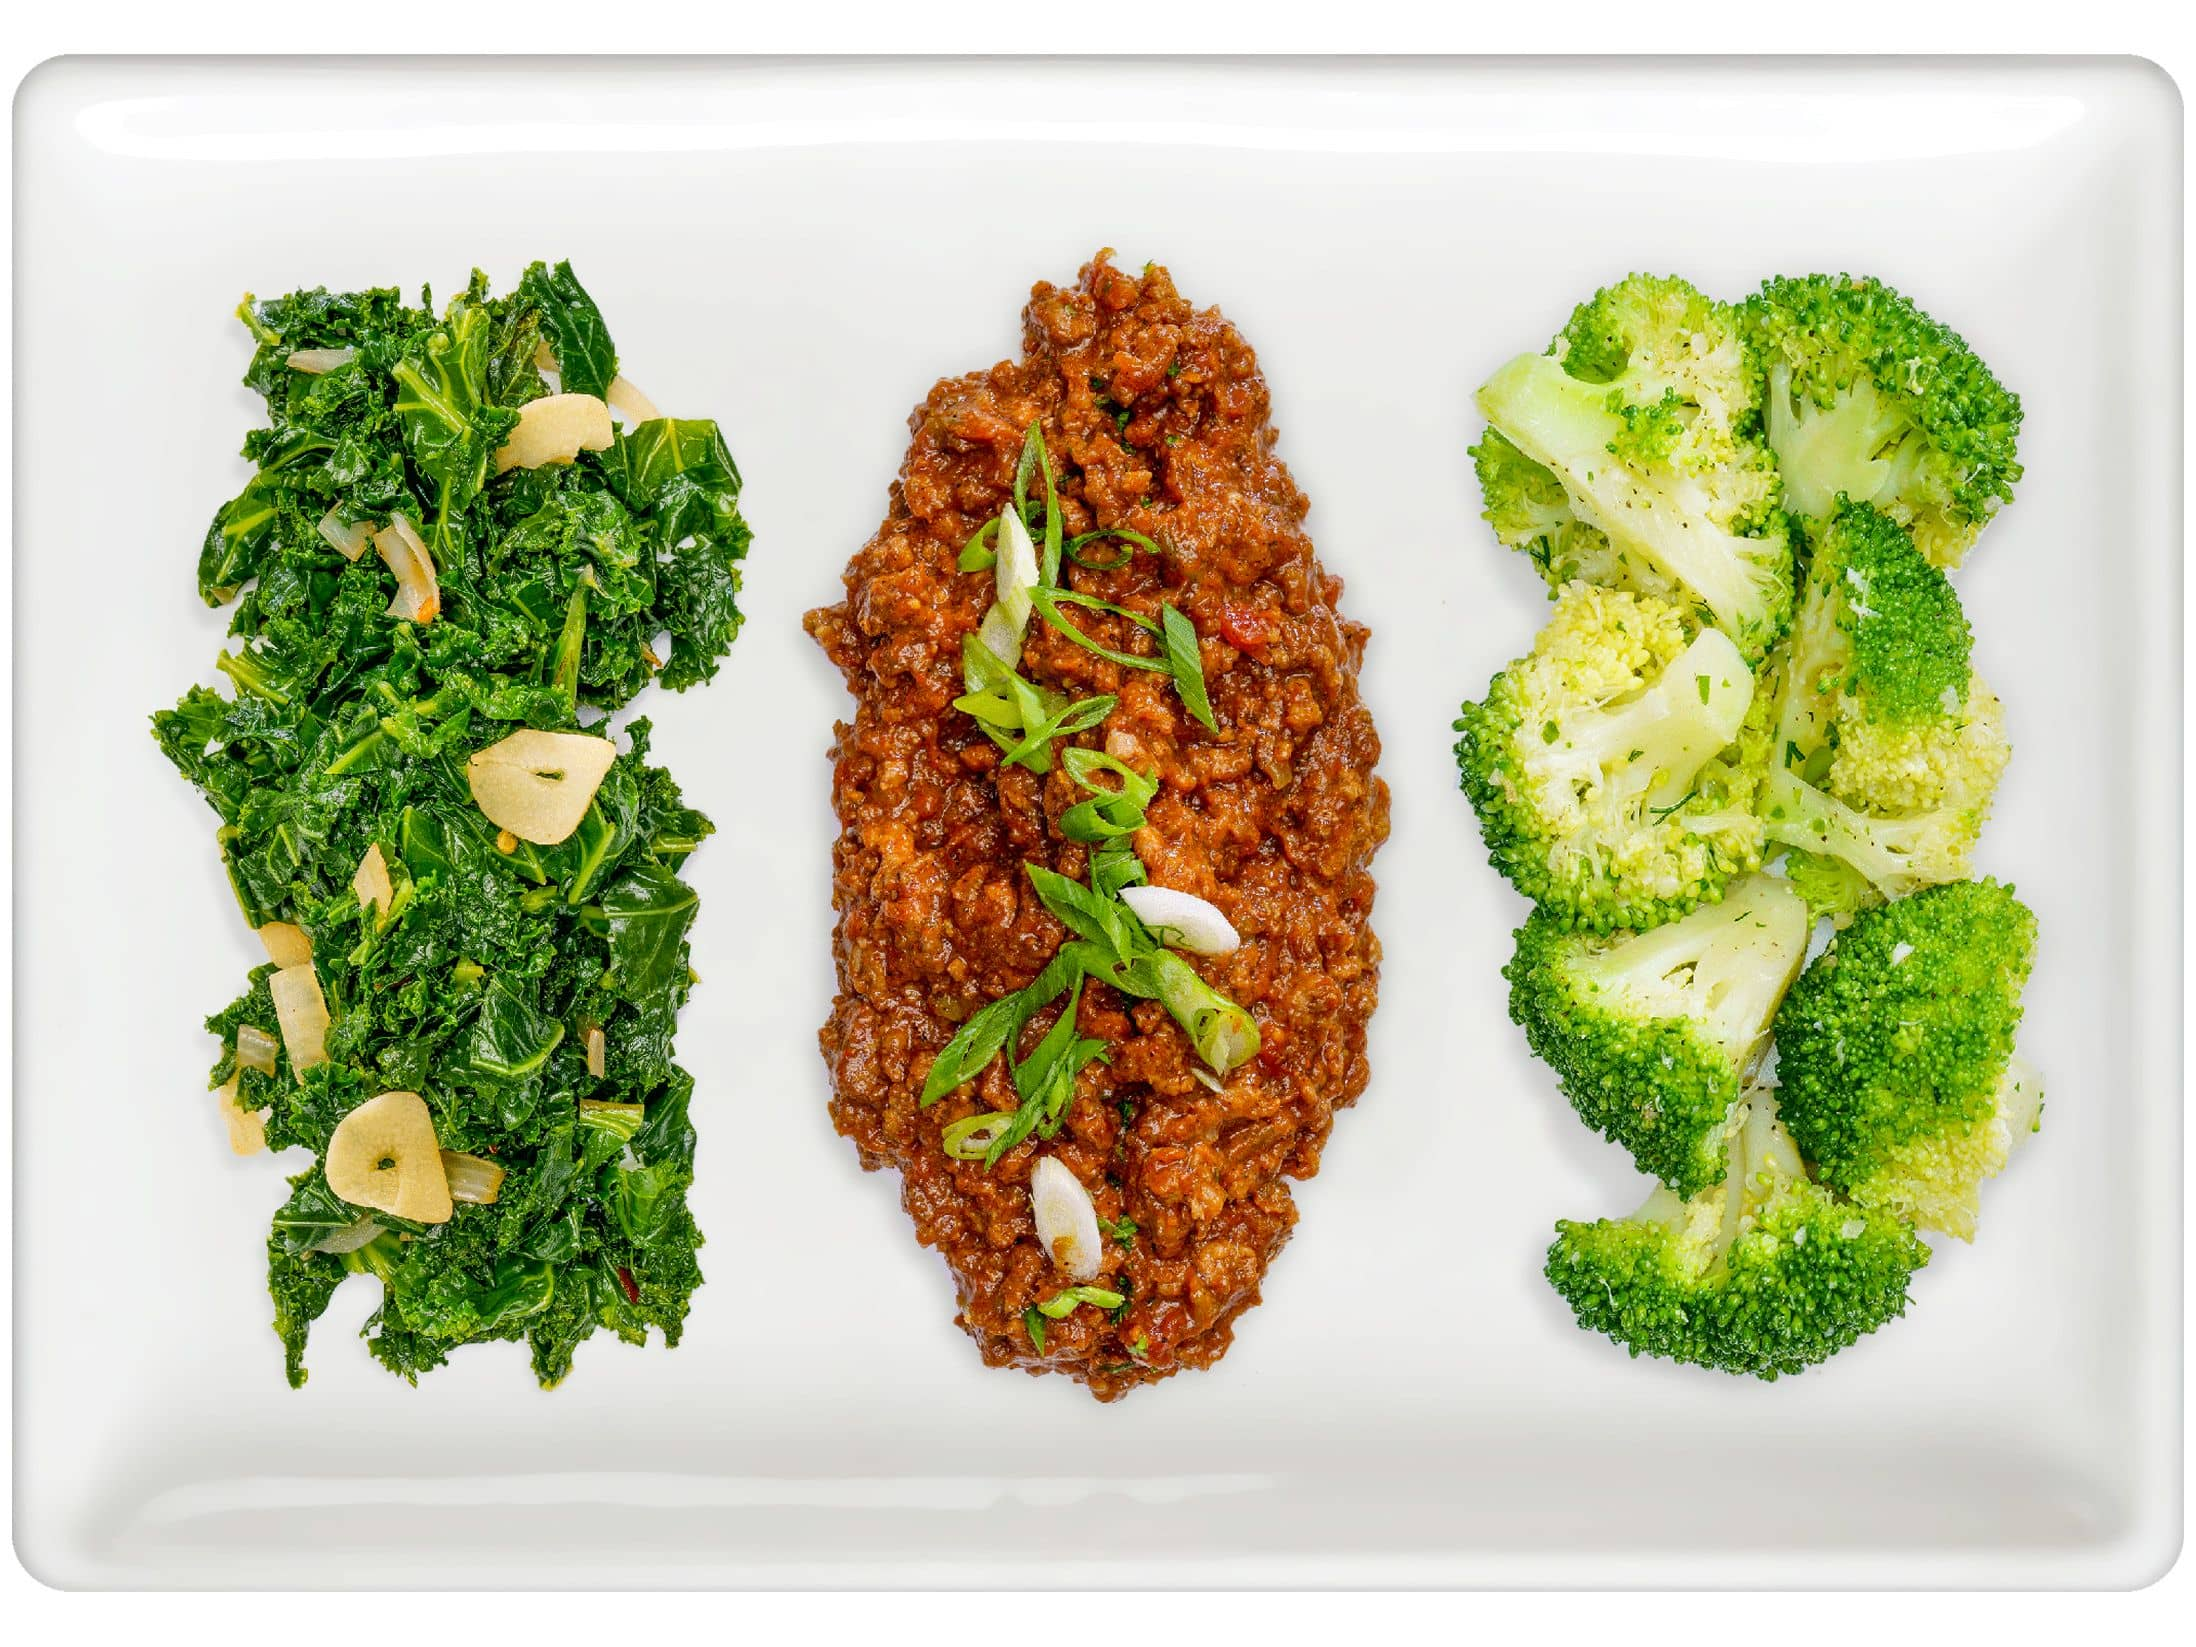 Braised Kale, Chili Con Carne, Steamed Broccoli